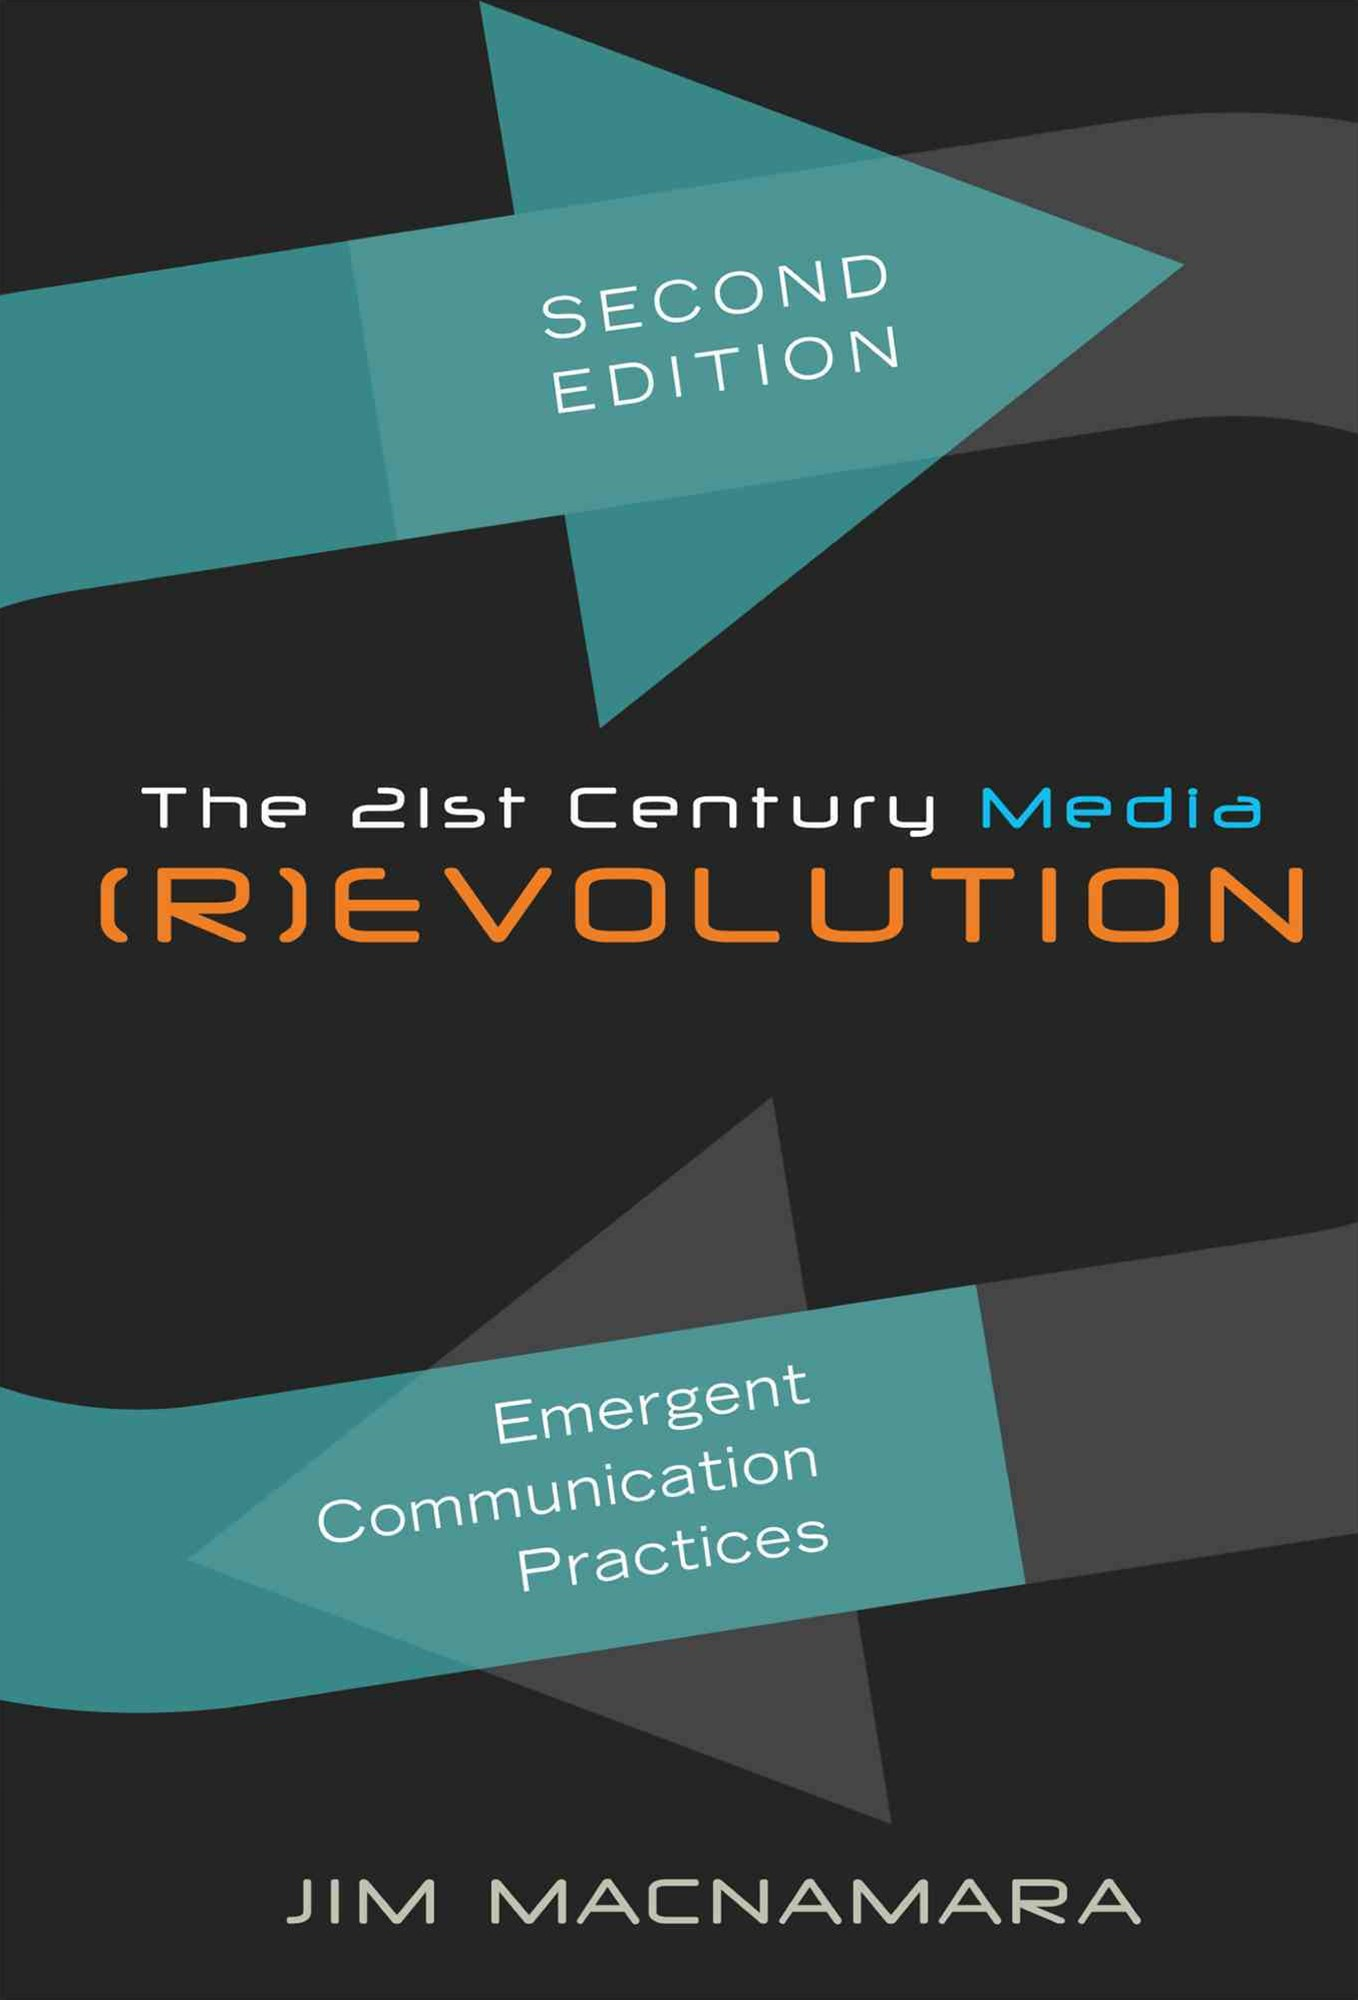 The 21st Century Media (R)evolution